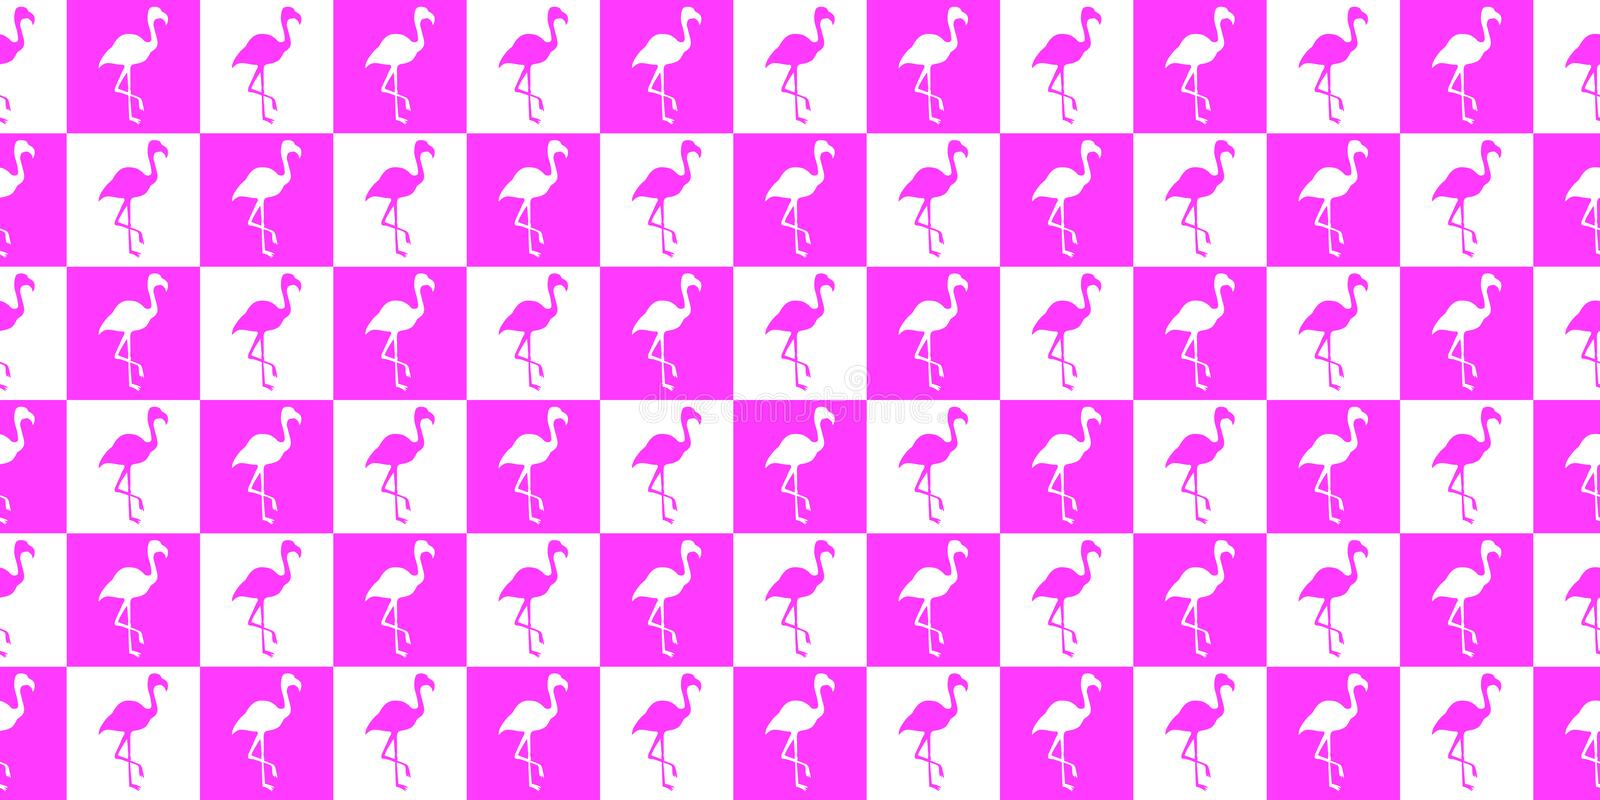 Silhouette of a flamingo geometric seamless pattern. Silhouette of flamingos in pink and white squares royalty free illustration